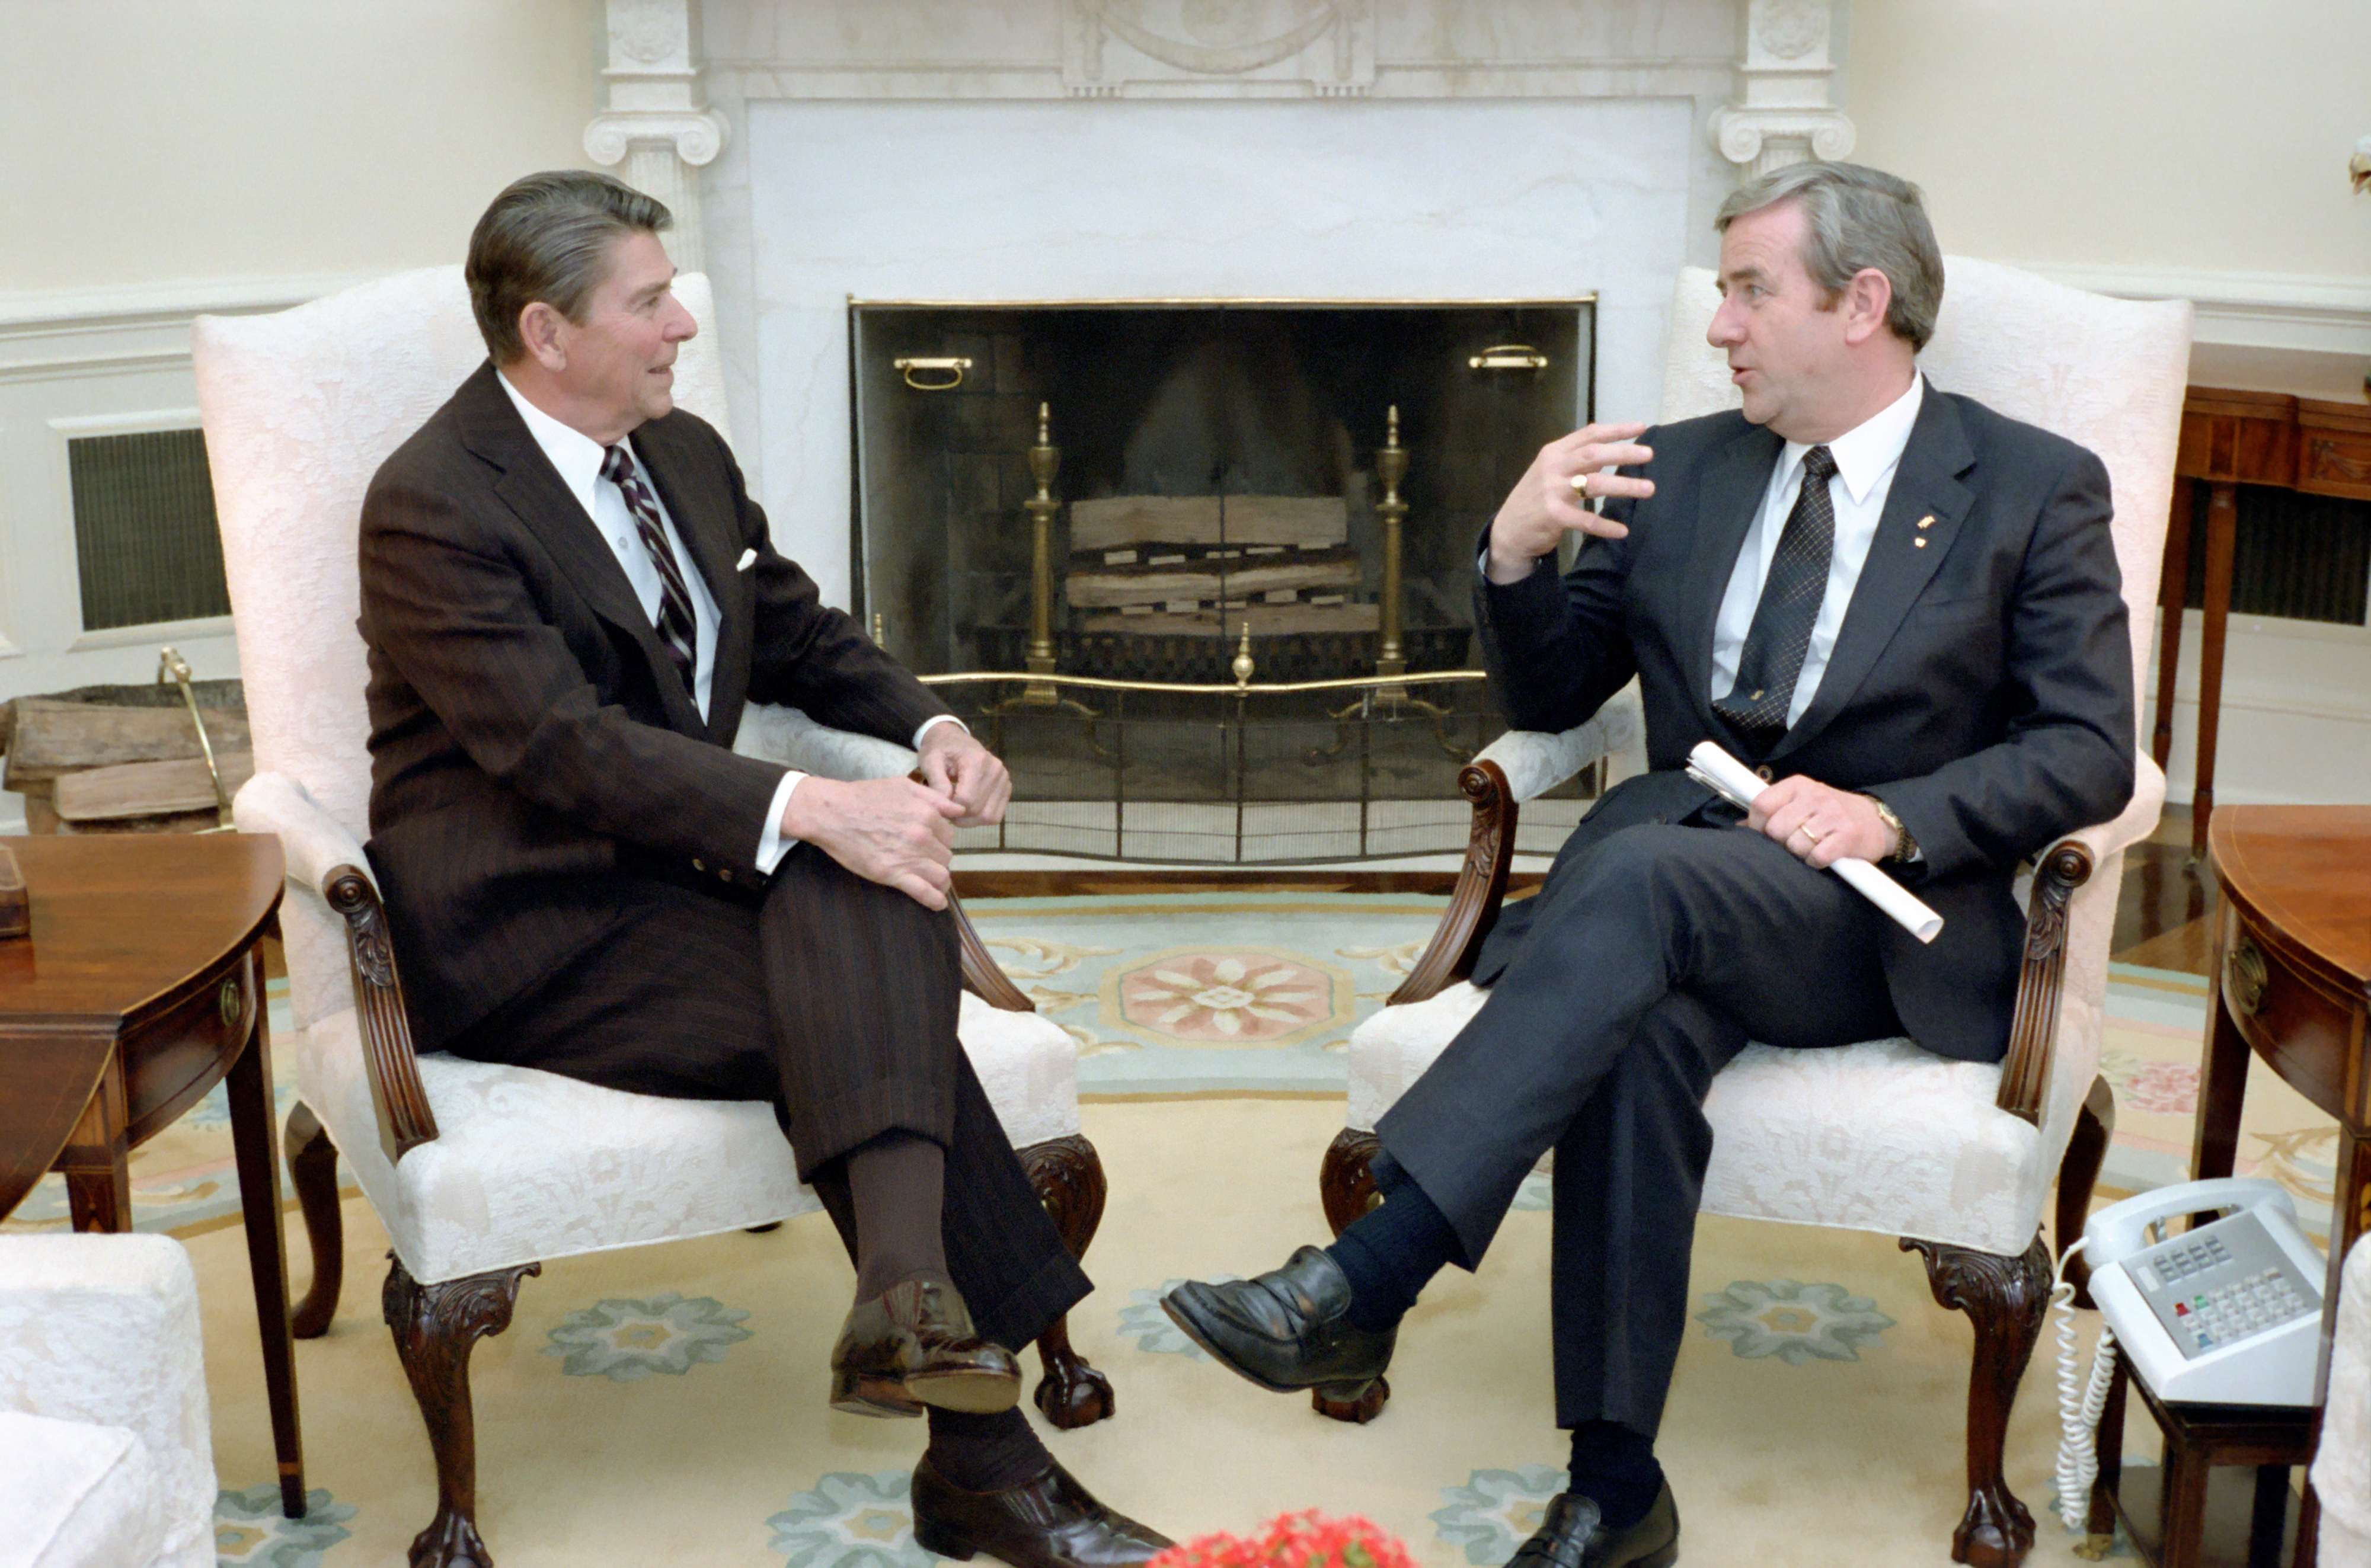 File:President Ronald Reagan and Jerry Falwell.jpg - Wikimedia Commons